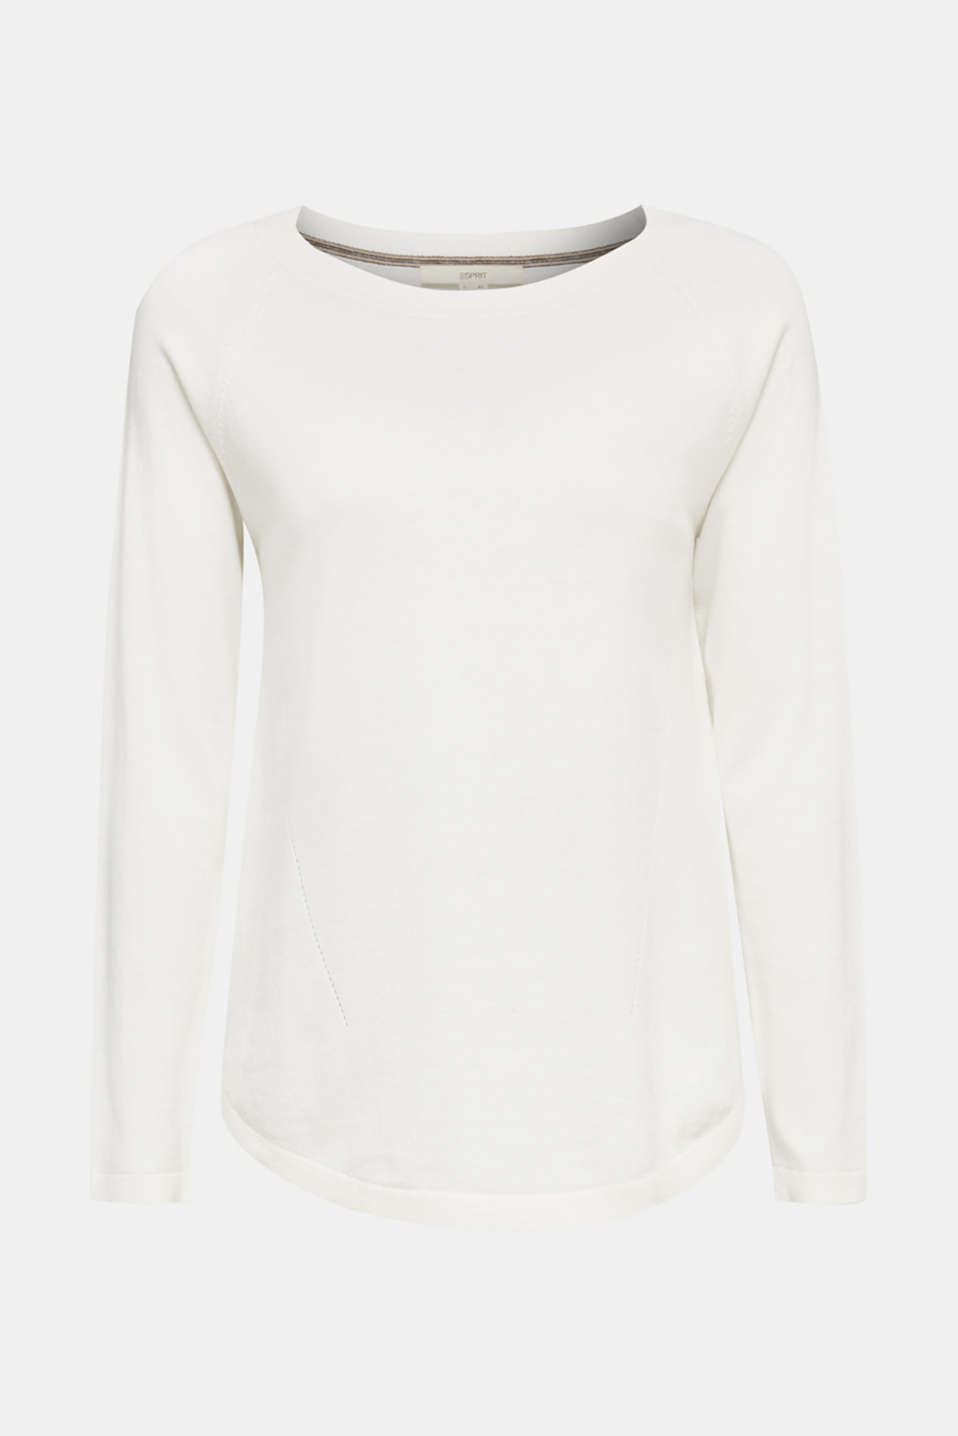 With linen: Jumper with open-work patterned details, OFF WHITE, detail image number 7